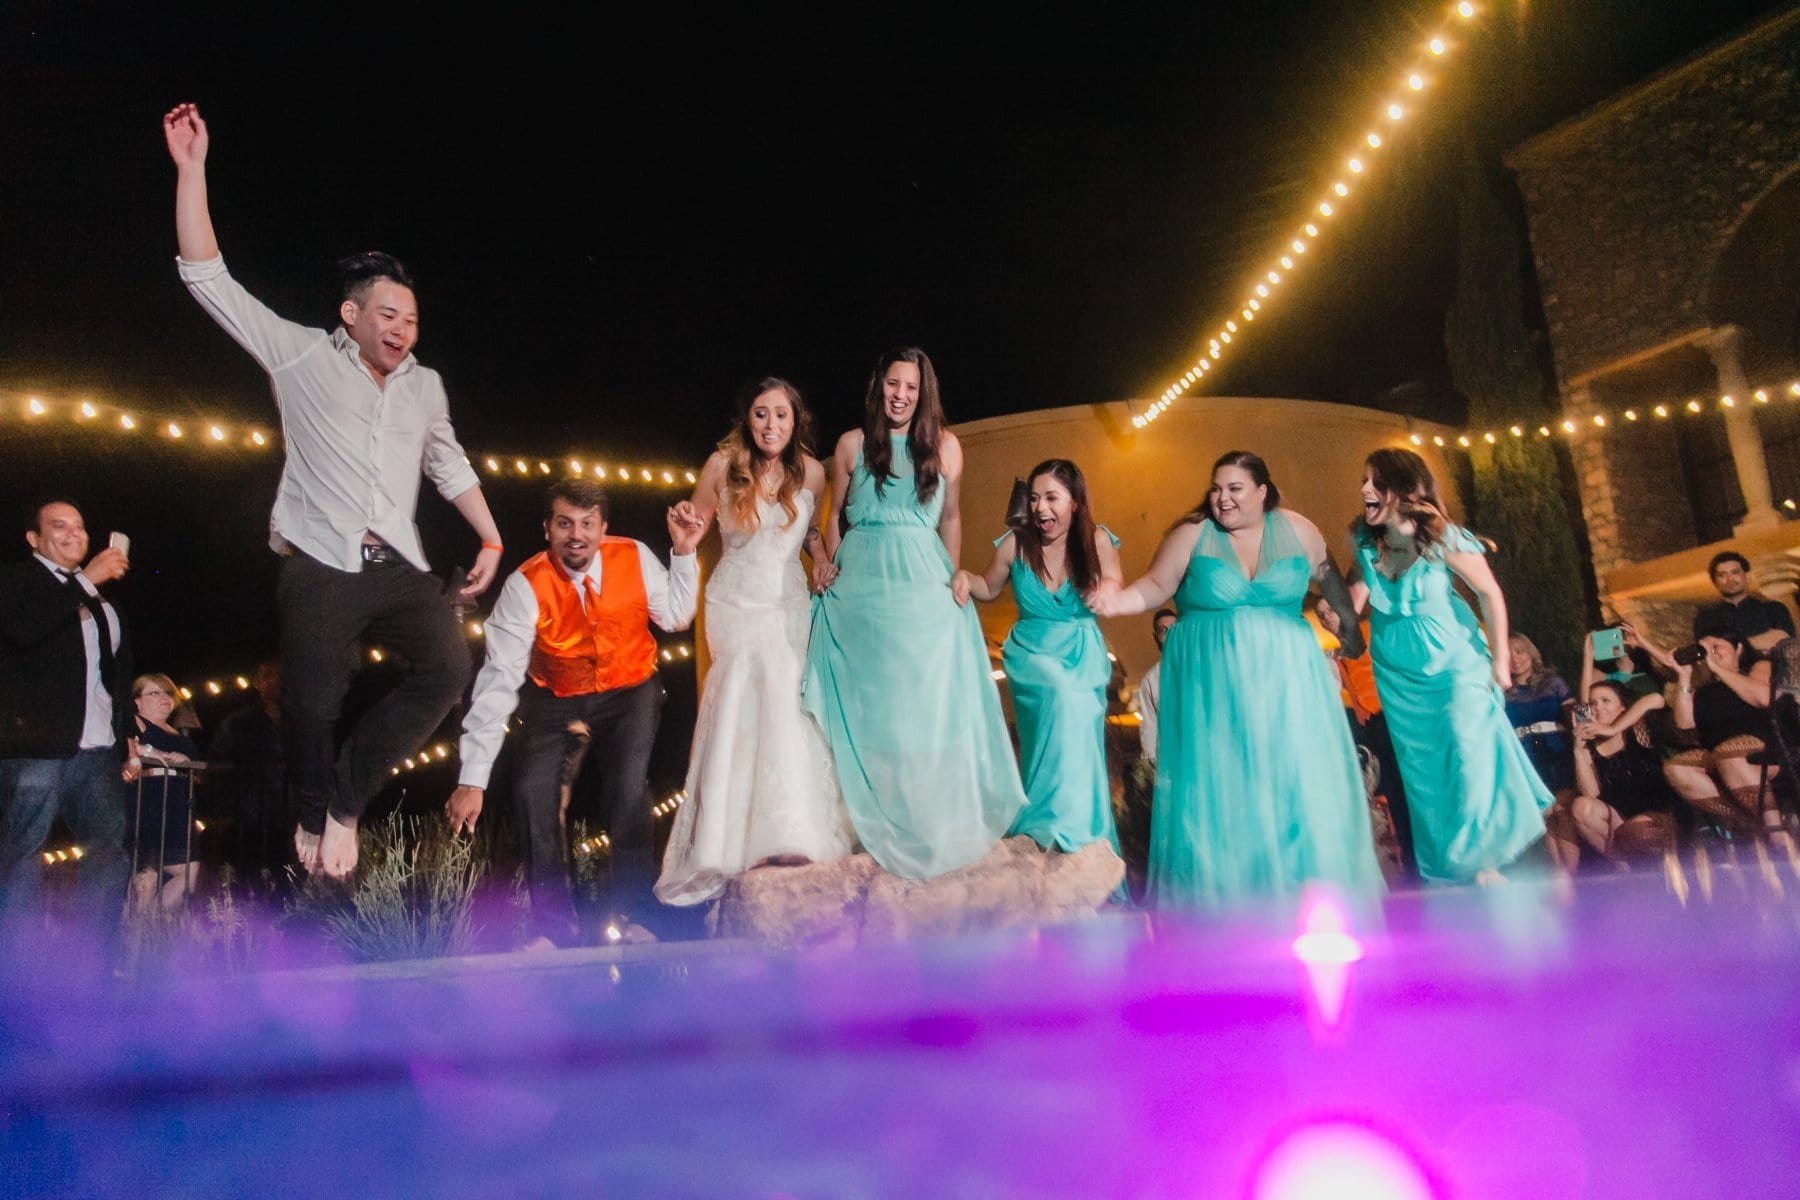 bride & groom & wedding party jumping into pool underwater photo